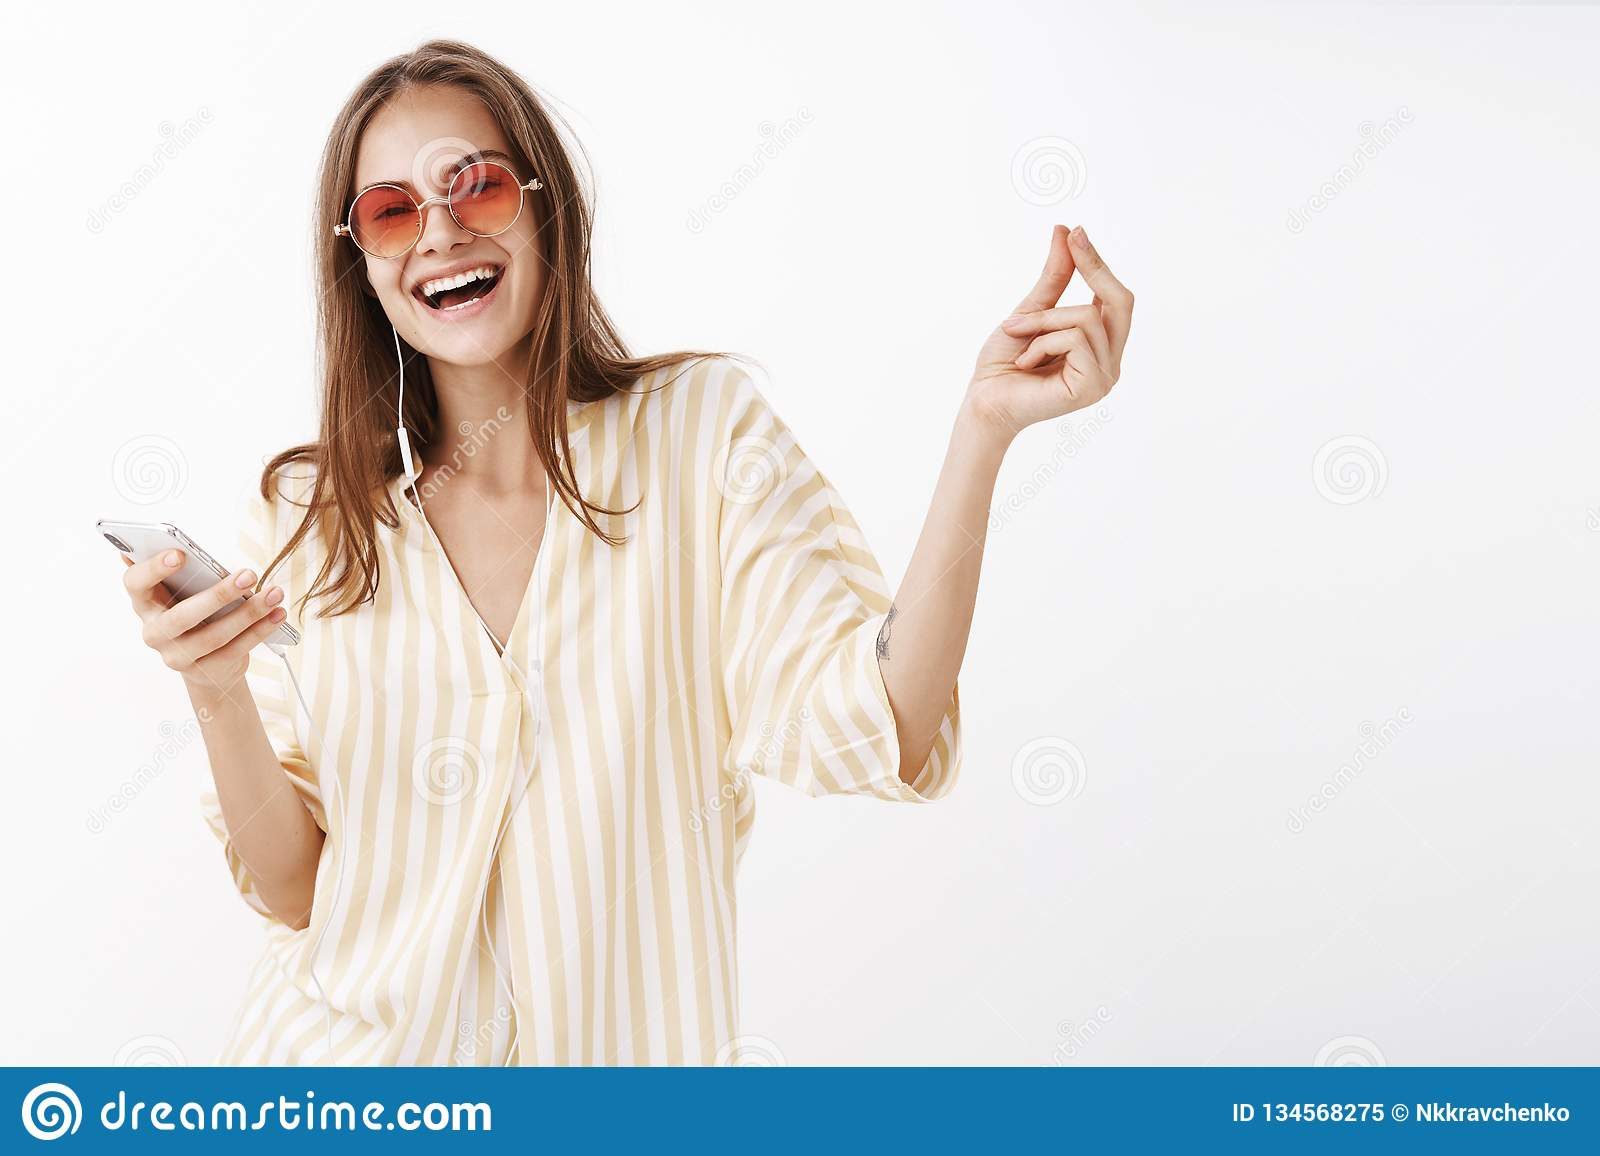 One click and go. Portrait of joyful delighted happy woman in trendy sunglasses and blouse holding smartphone smiling